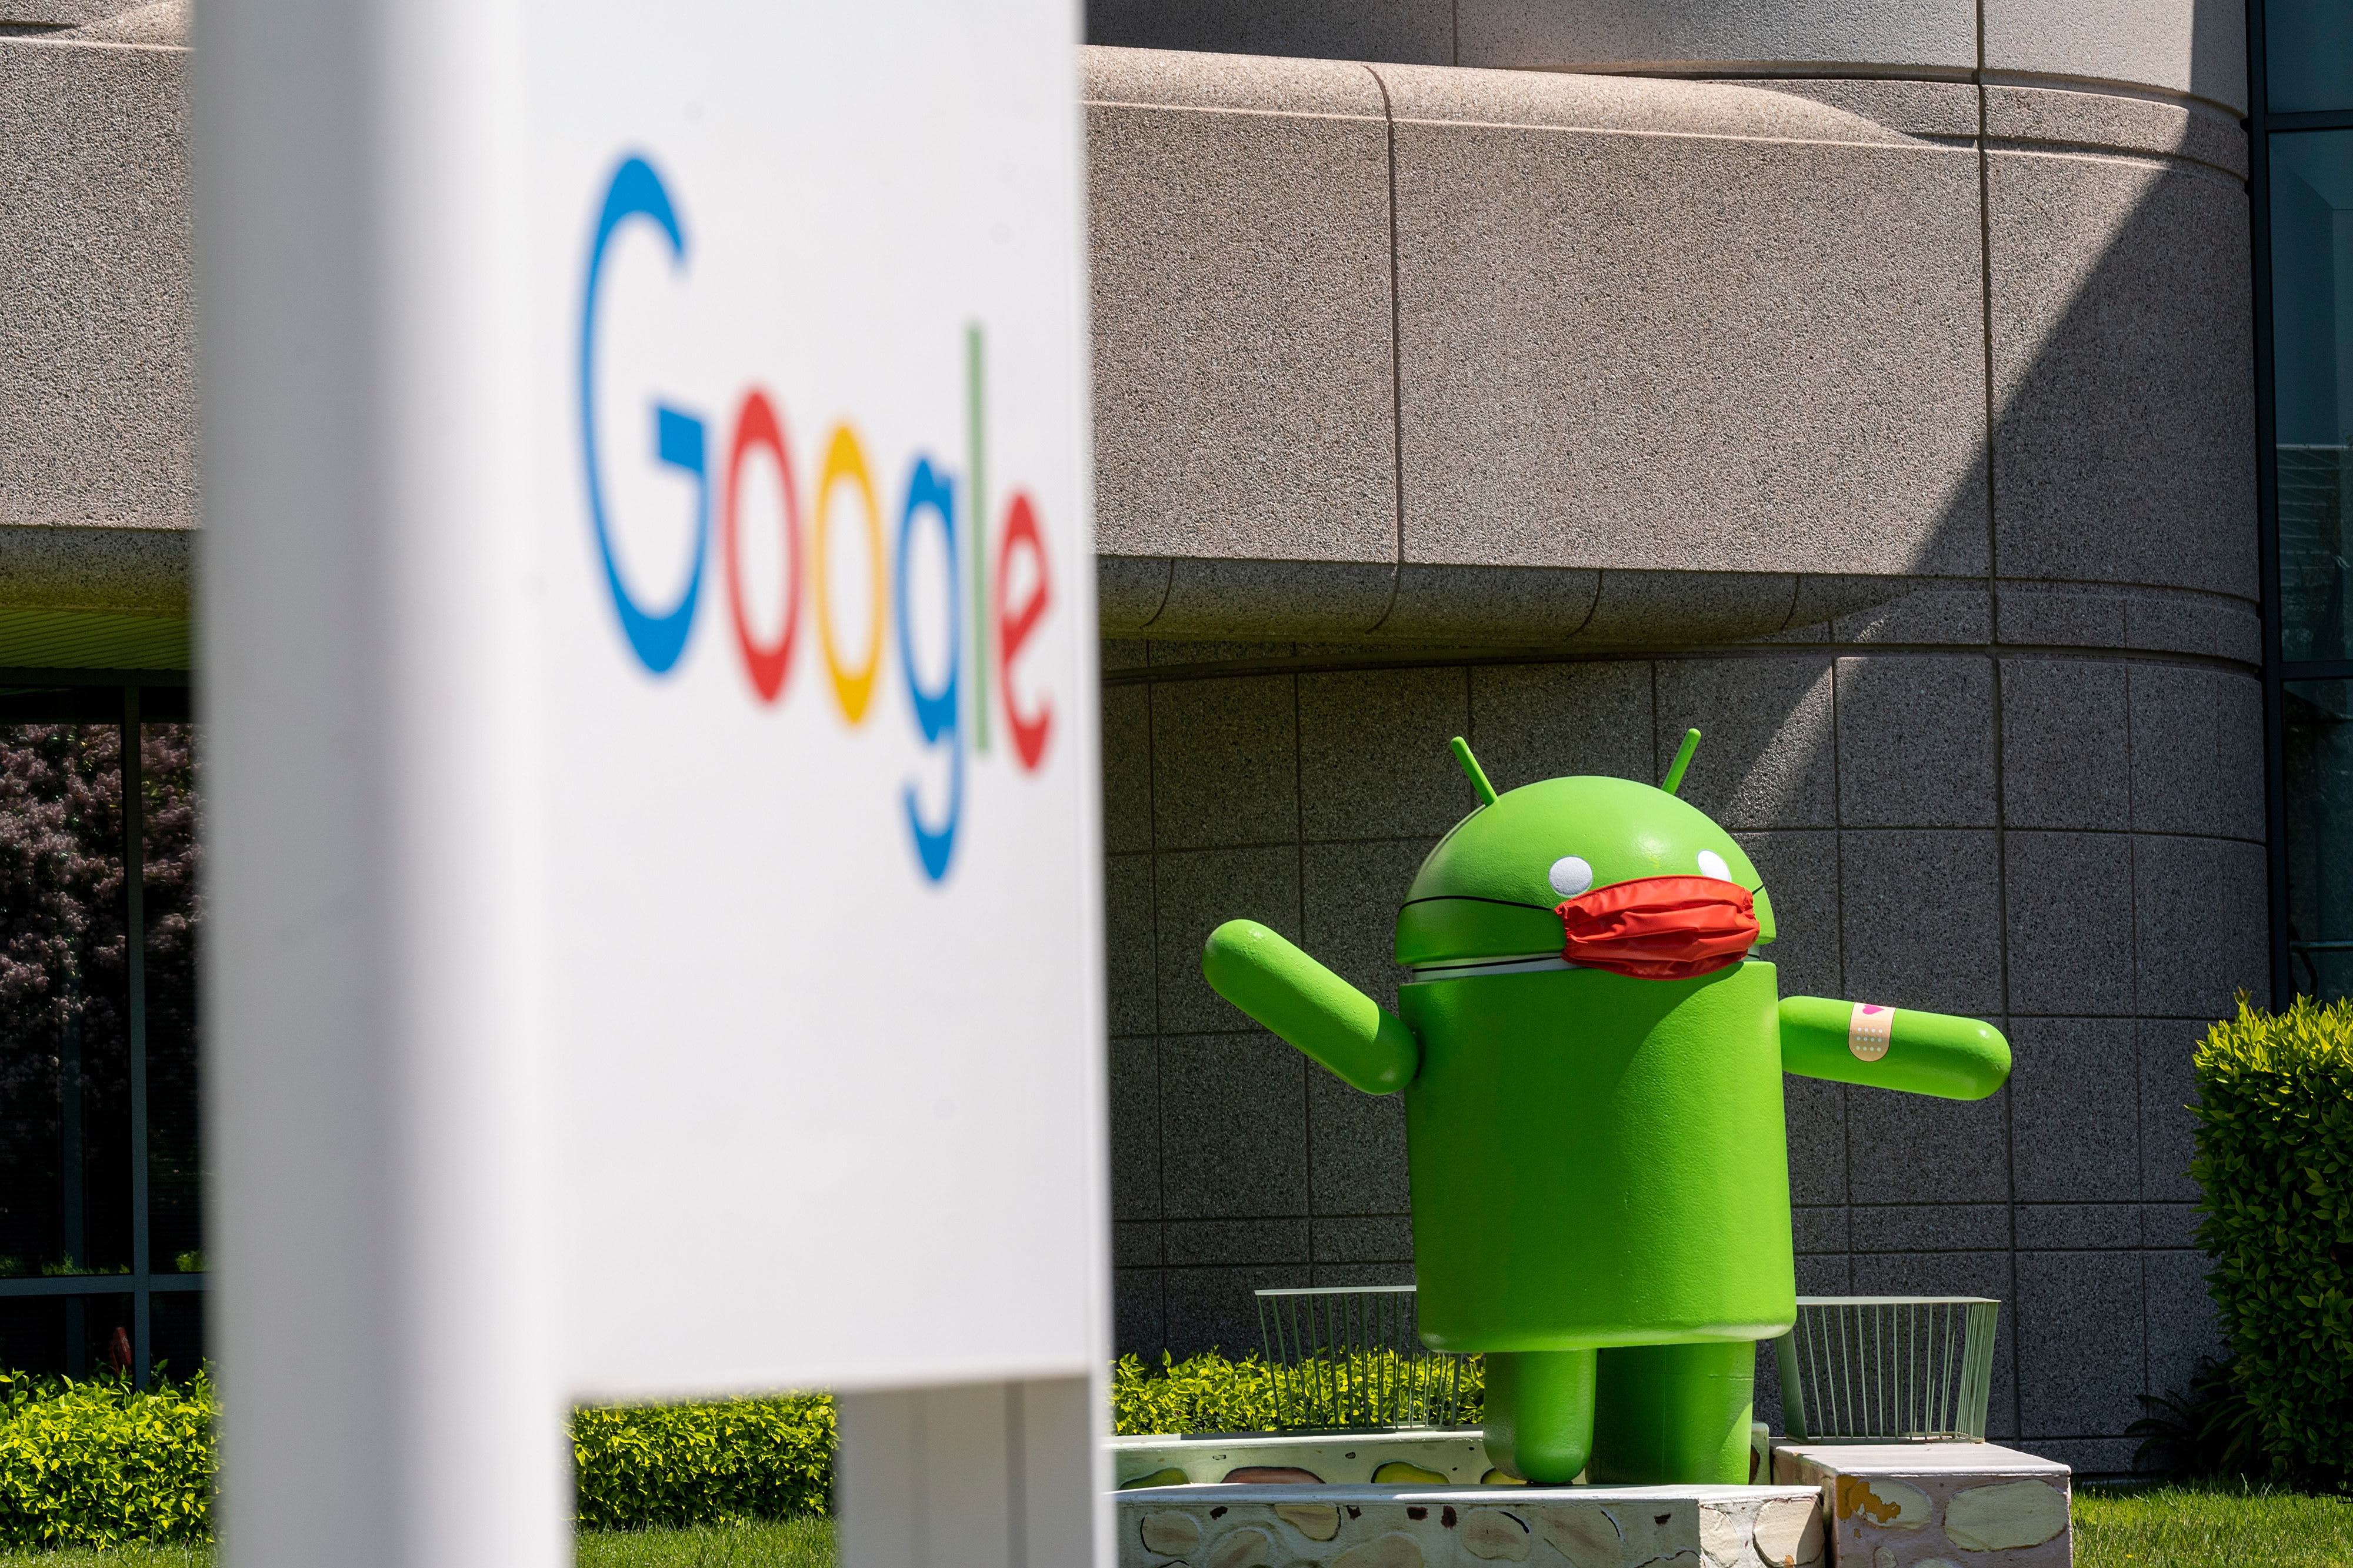 States bring a new antitrust suit against Google over its mobile app store